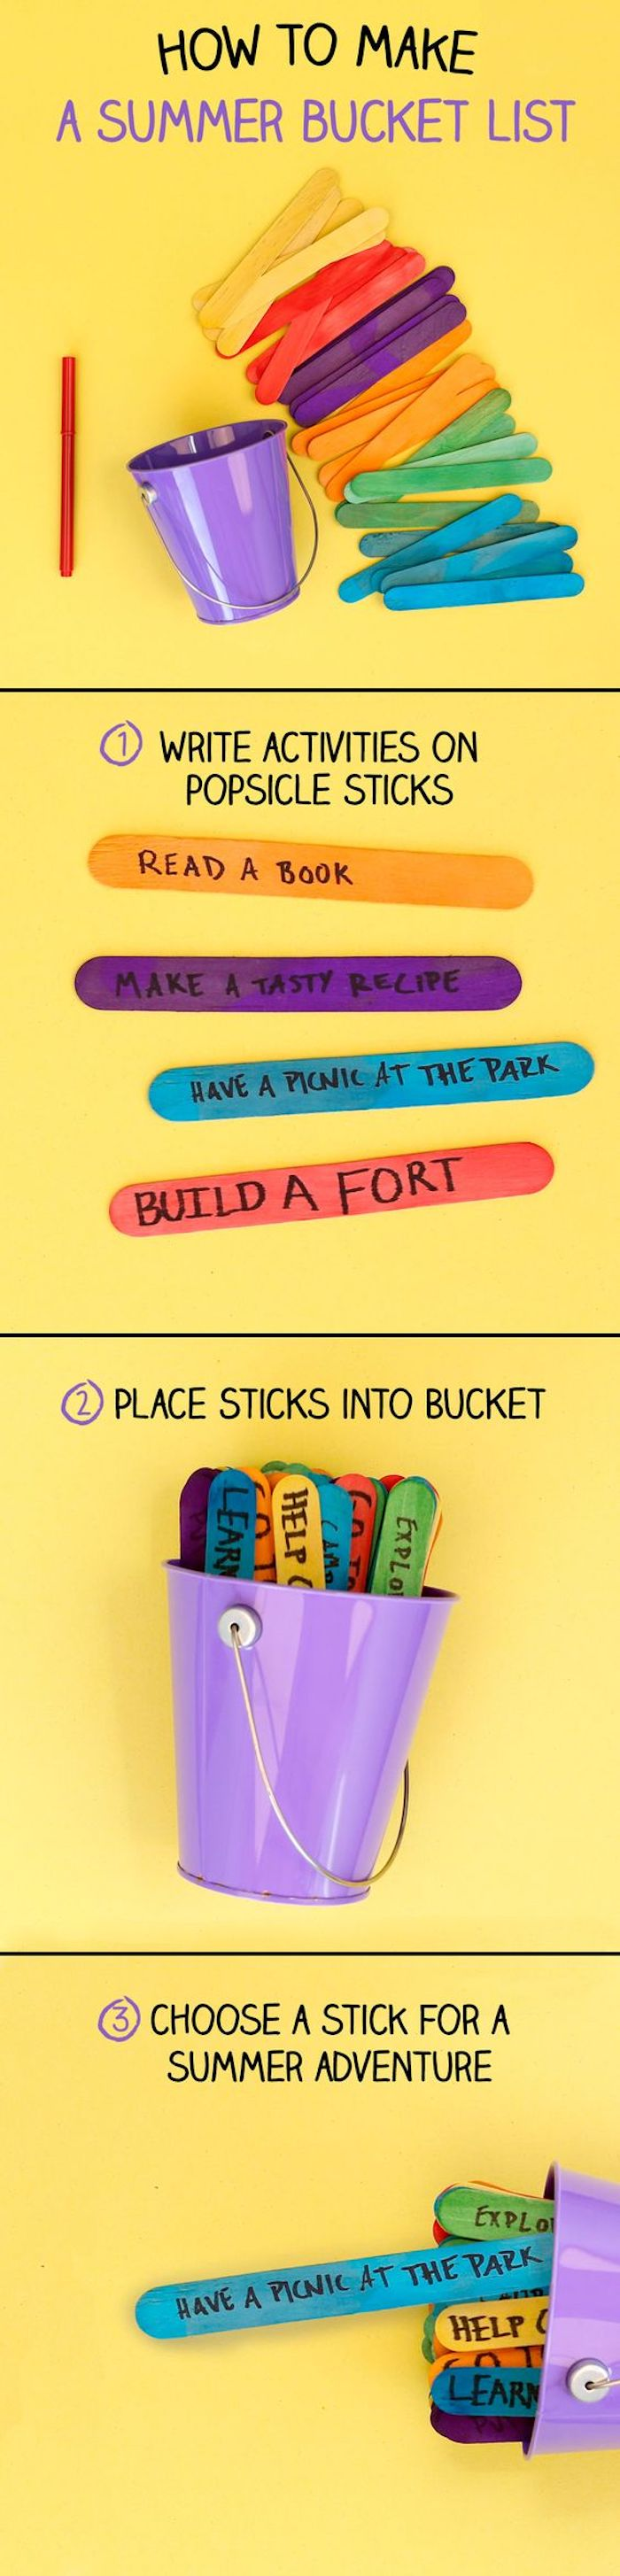 how to make a summer bucket list, diy things to do when bored, popsicle sticks, metal purple bucket